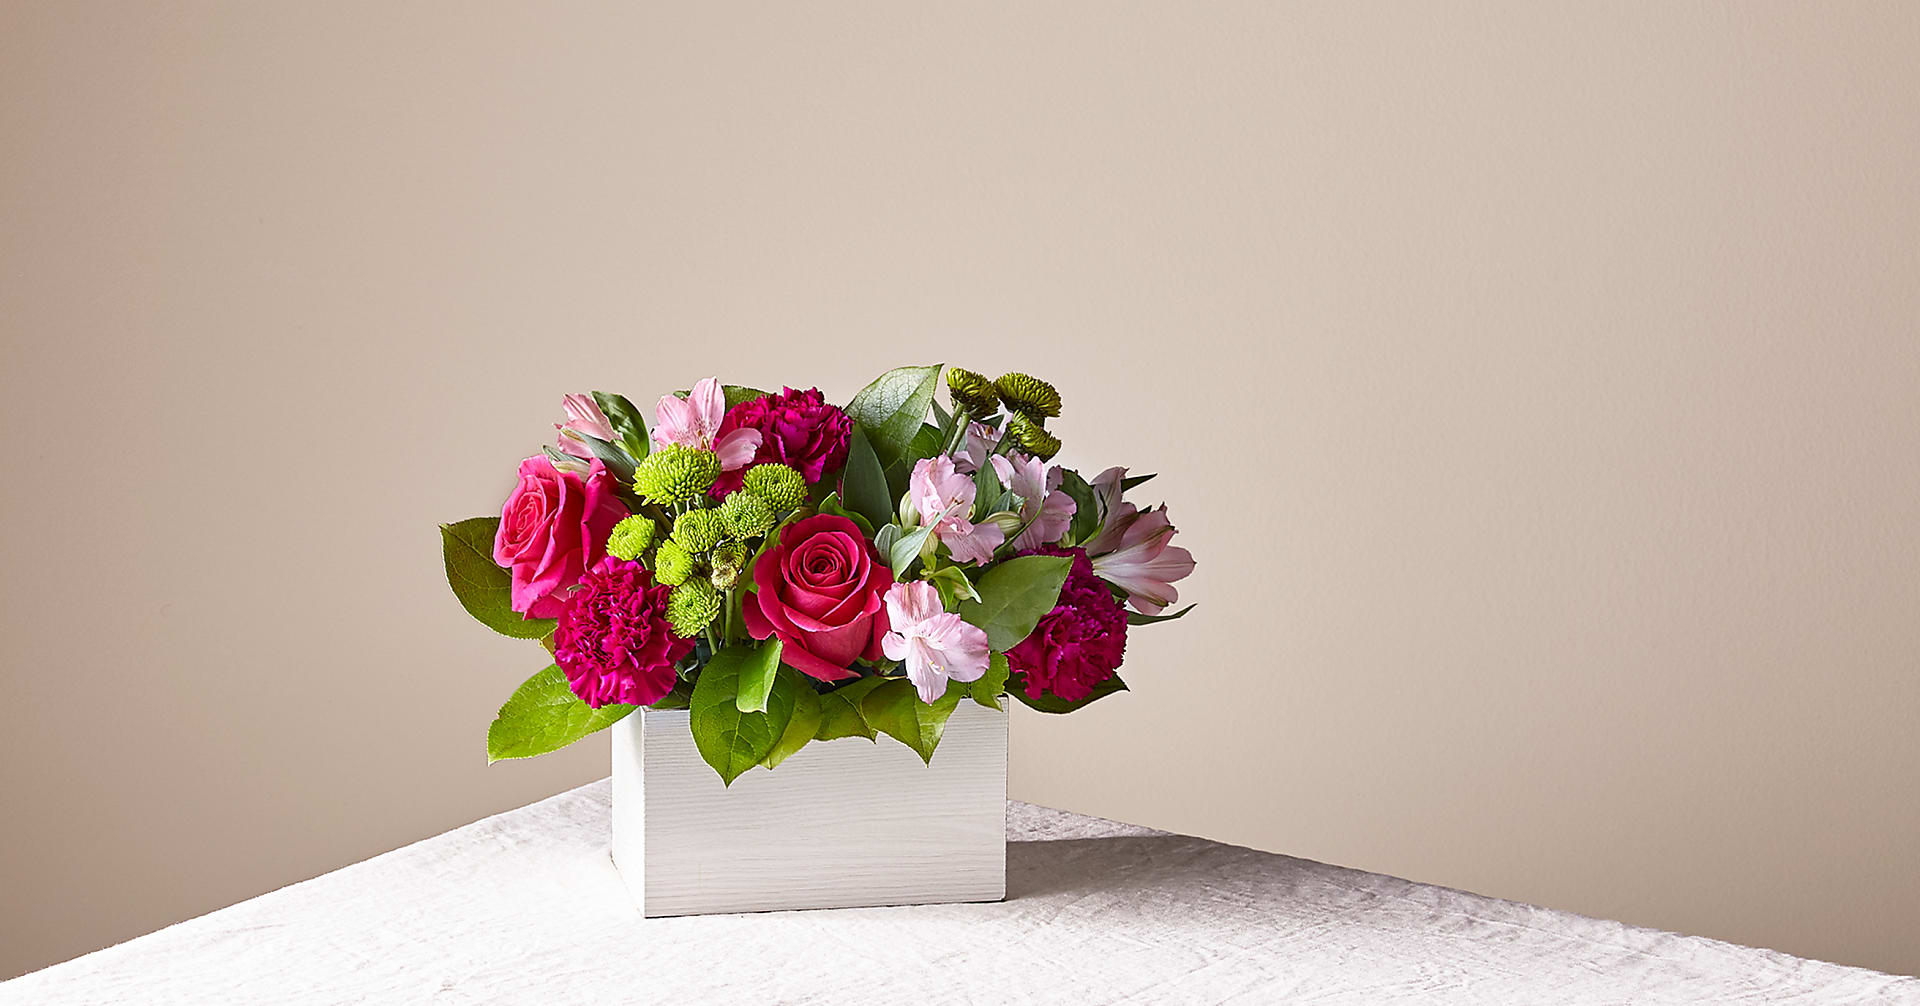 Watermelon Punch Bouquet - Image 1 Of 4